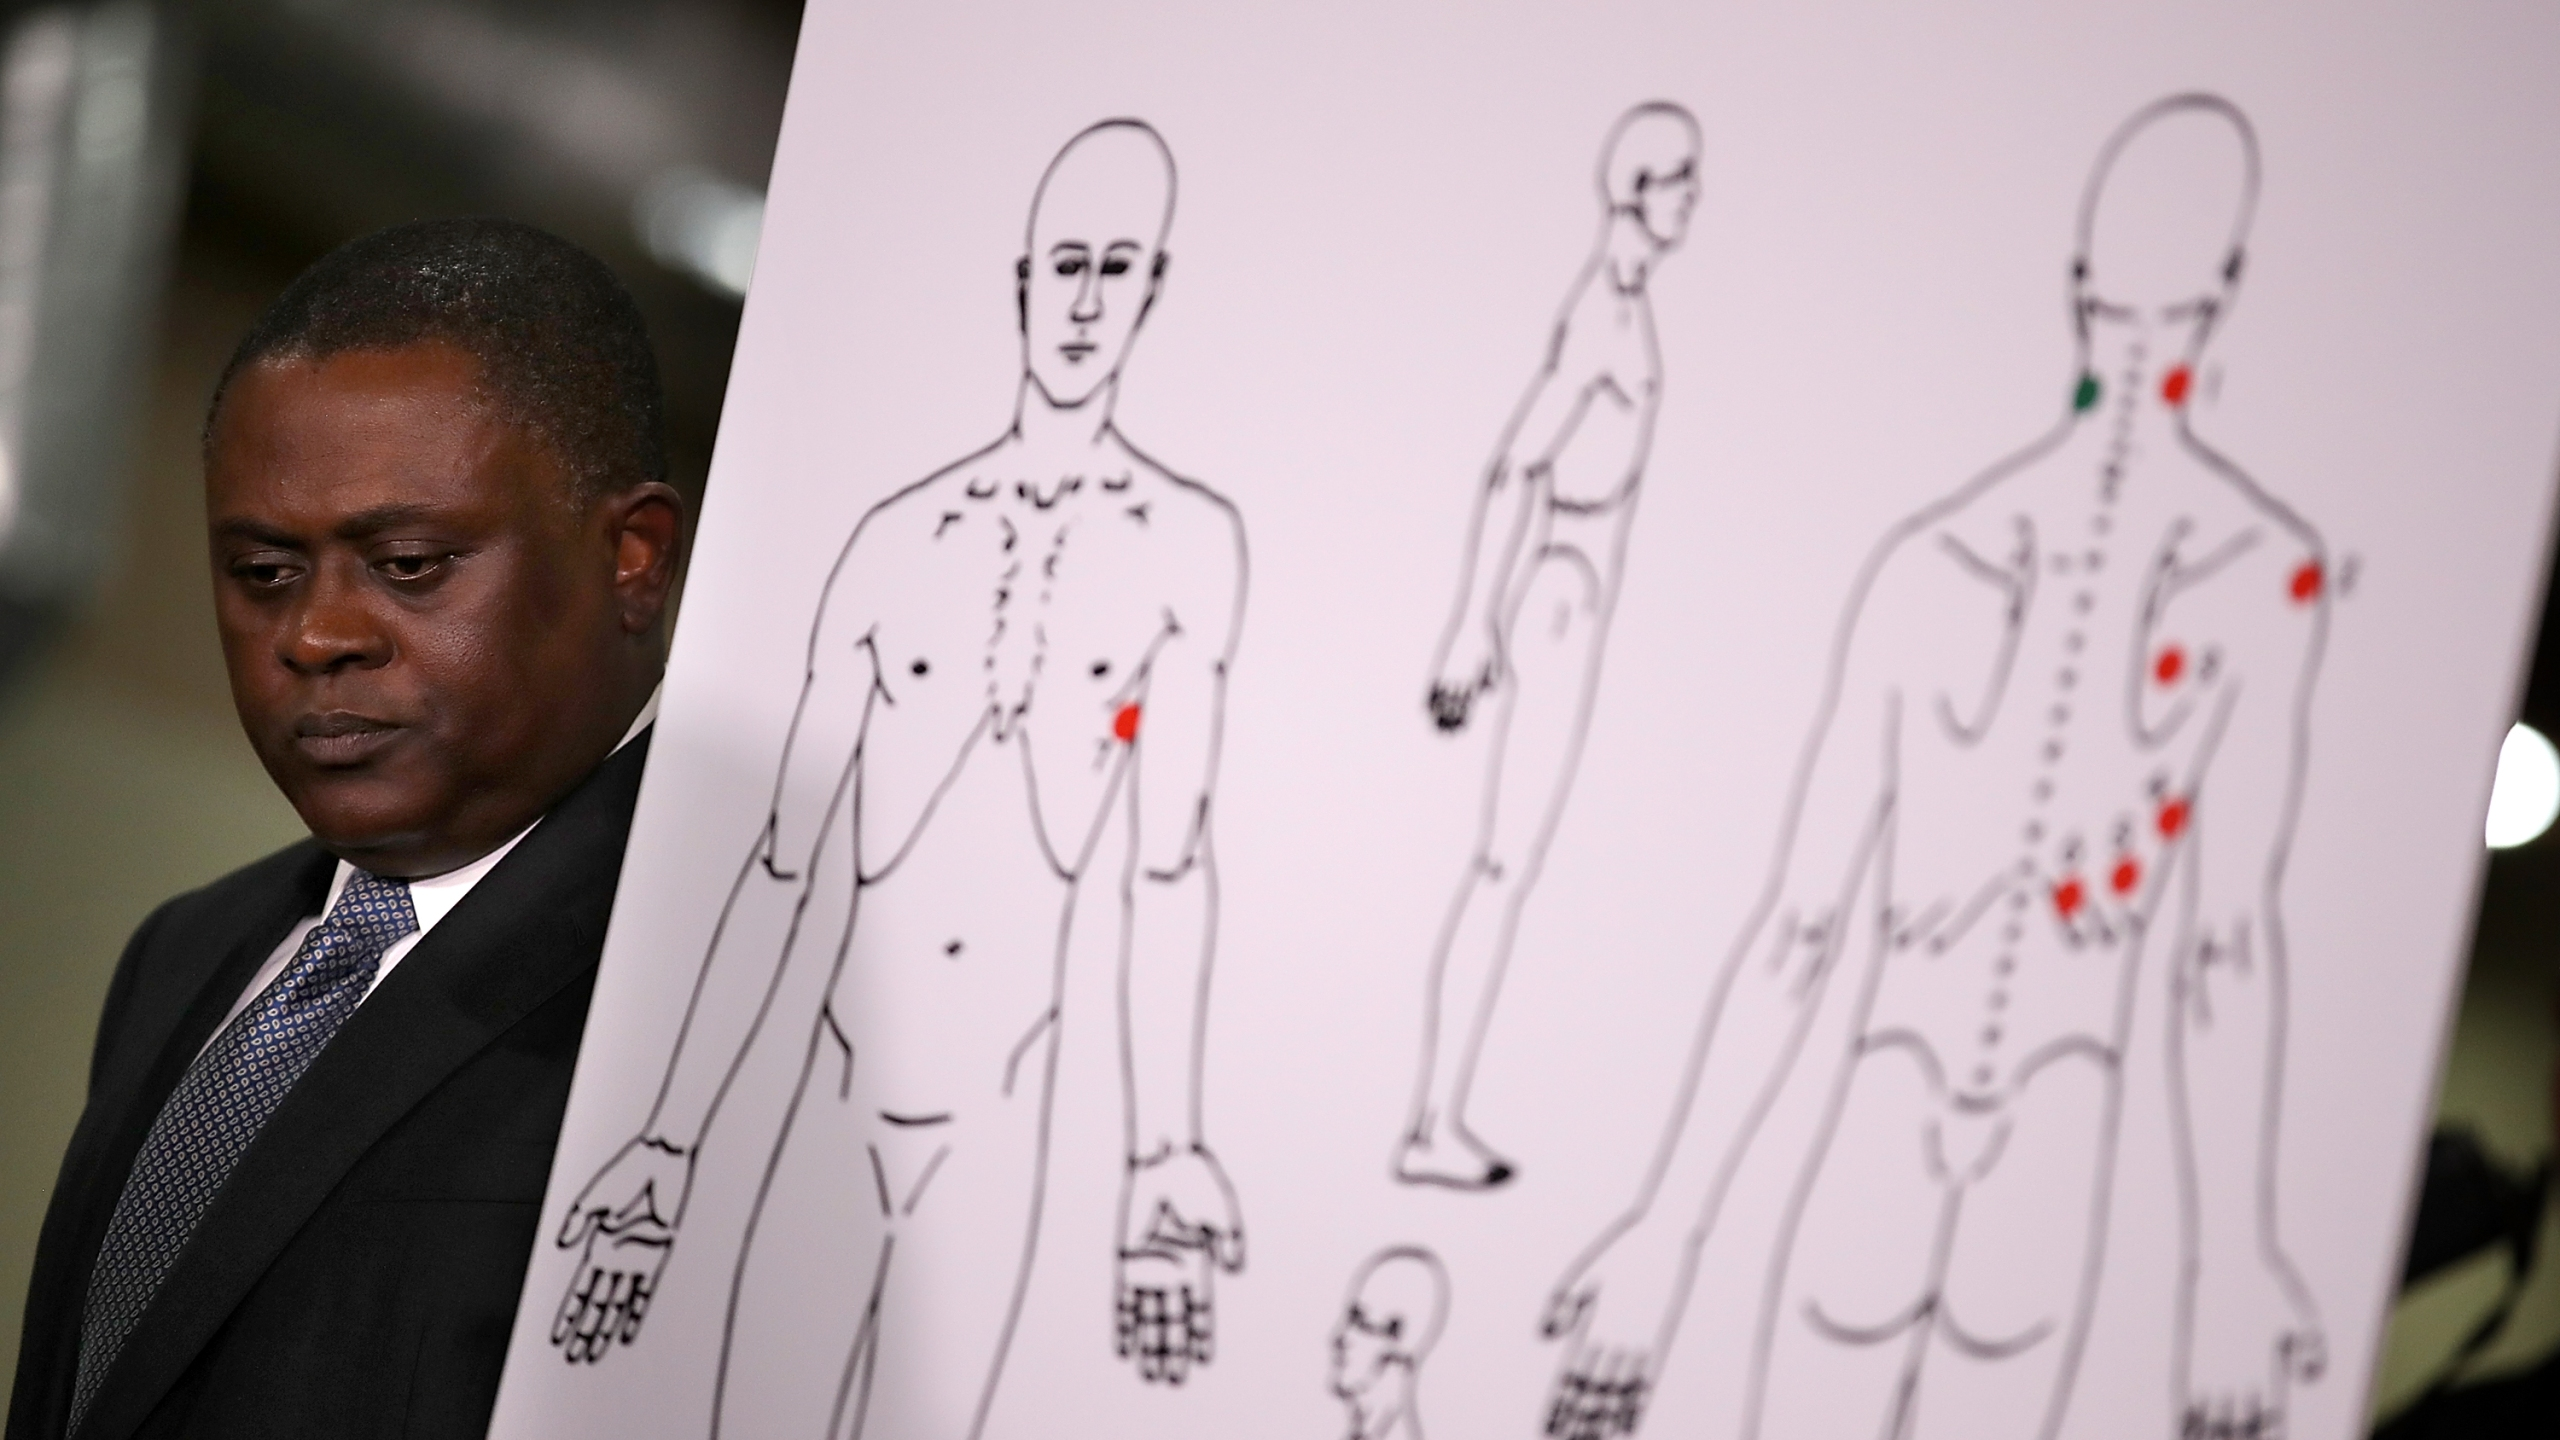 Dr. Bennet Omalu stands by a diagram showing the results of his autopsy of Stephon Clark during a news conference in Sacramento on March 30, 2018. (Credit: Justin Sullivan / Getty Images)